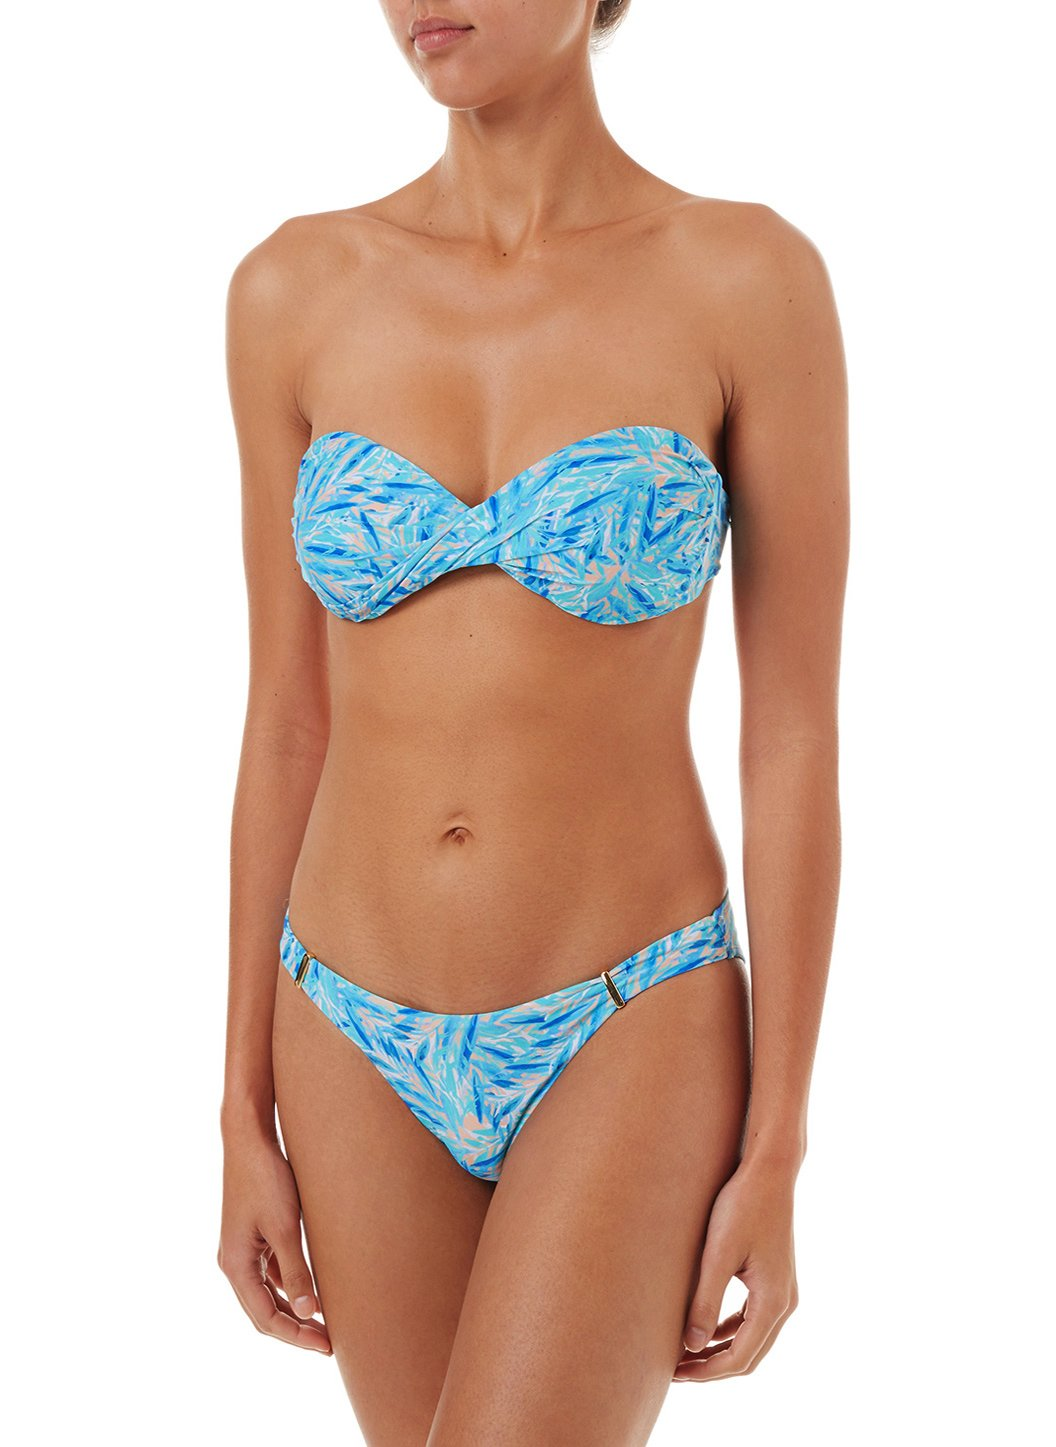 martinique blueleaf bandeau padded twist bikini 2019 F